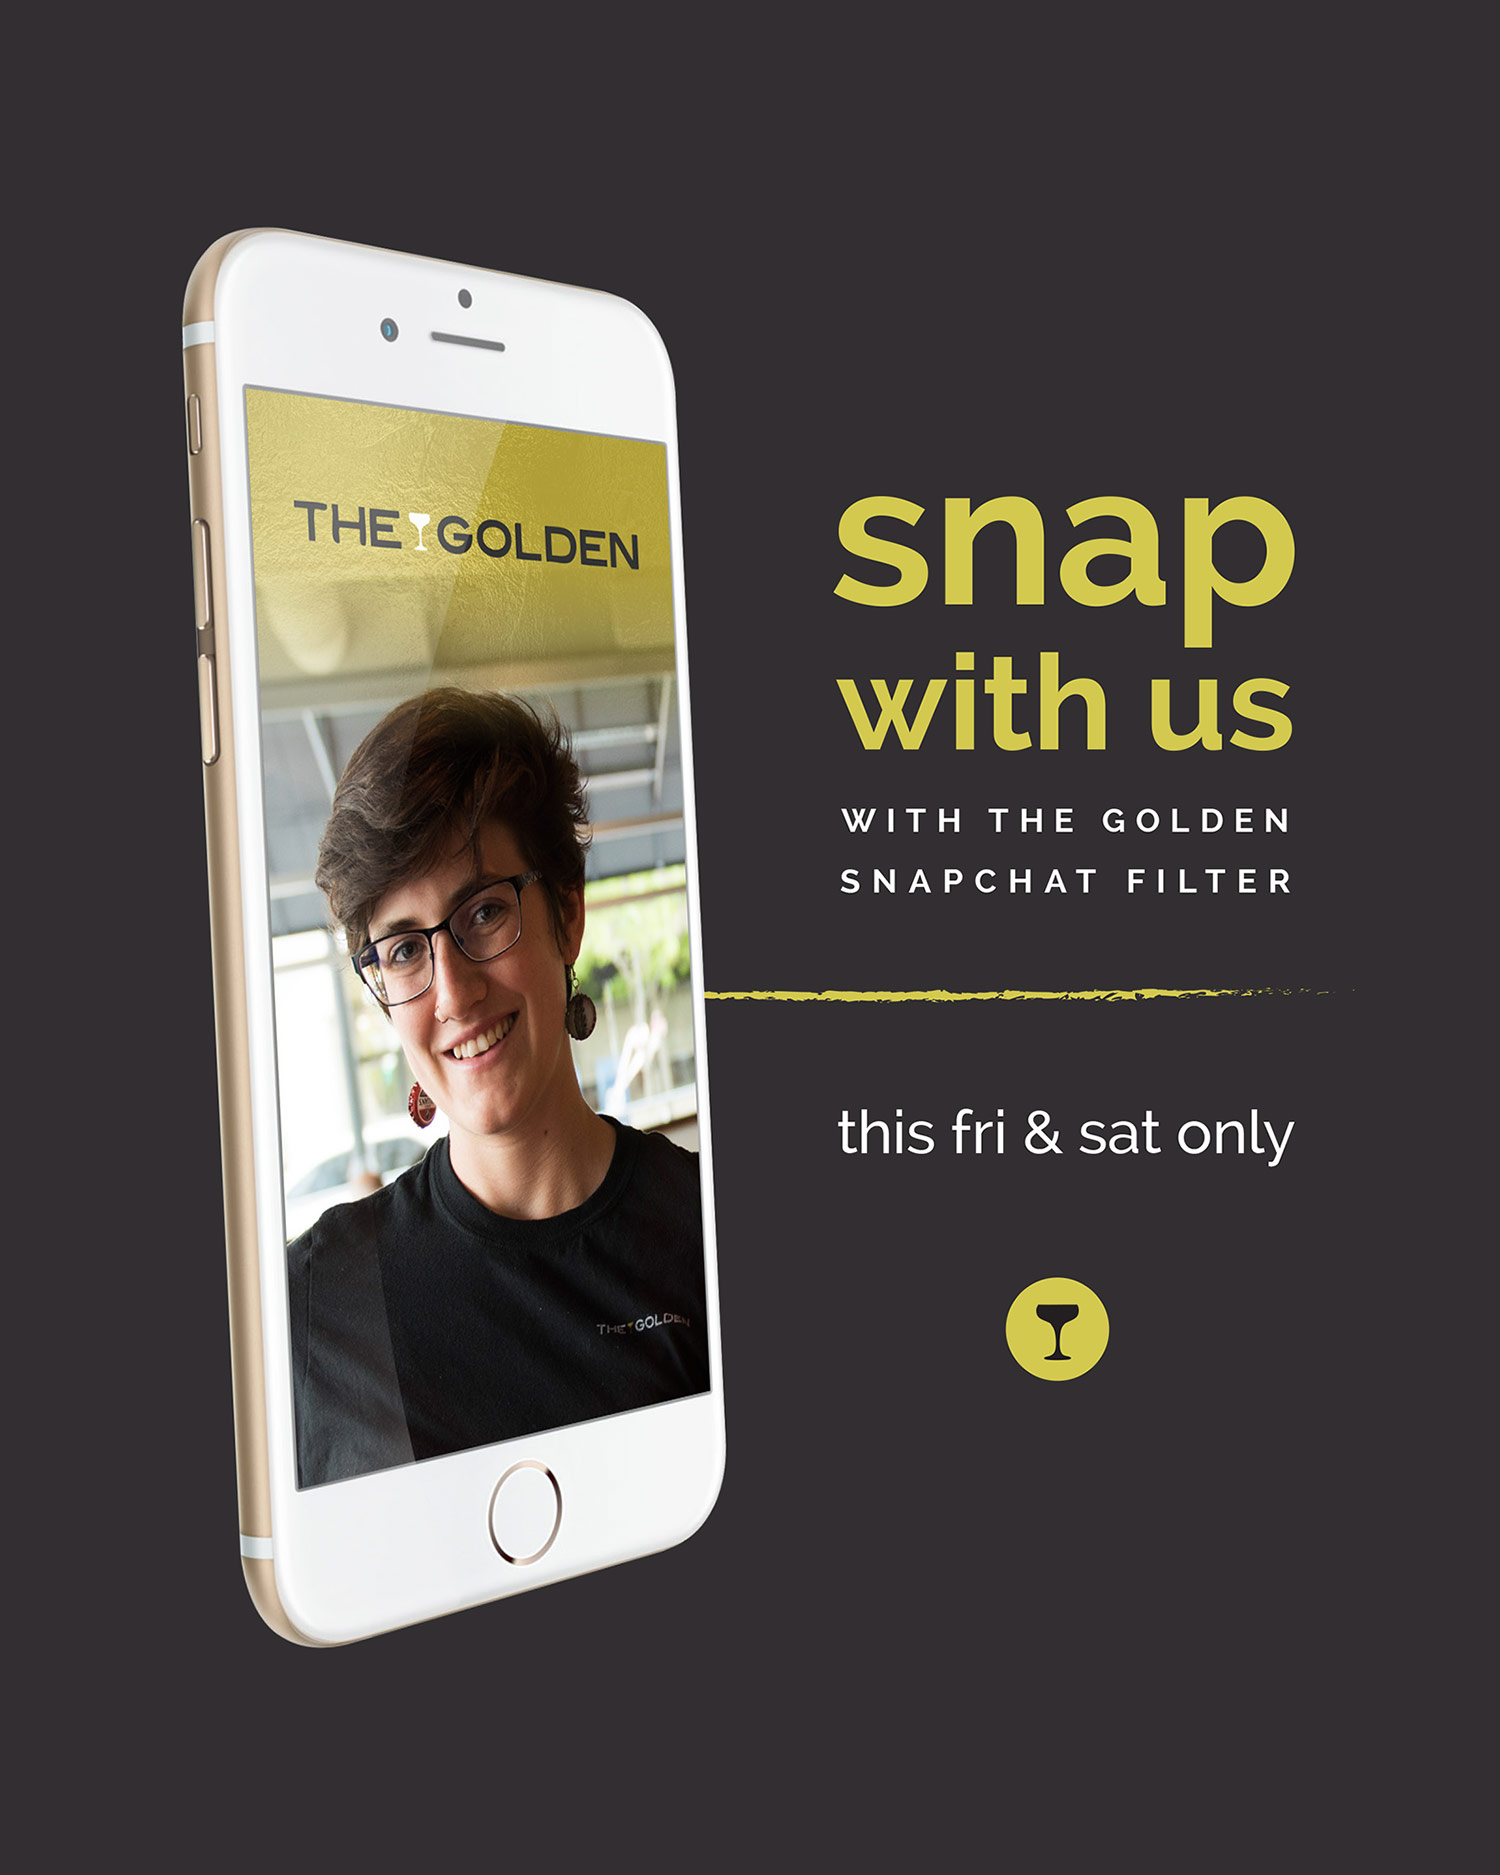 The Golden: Snapchat Filter